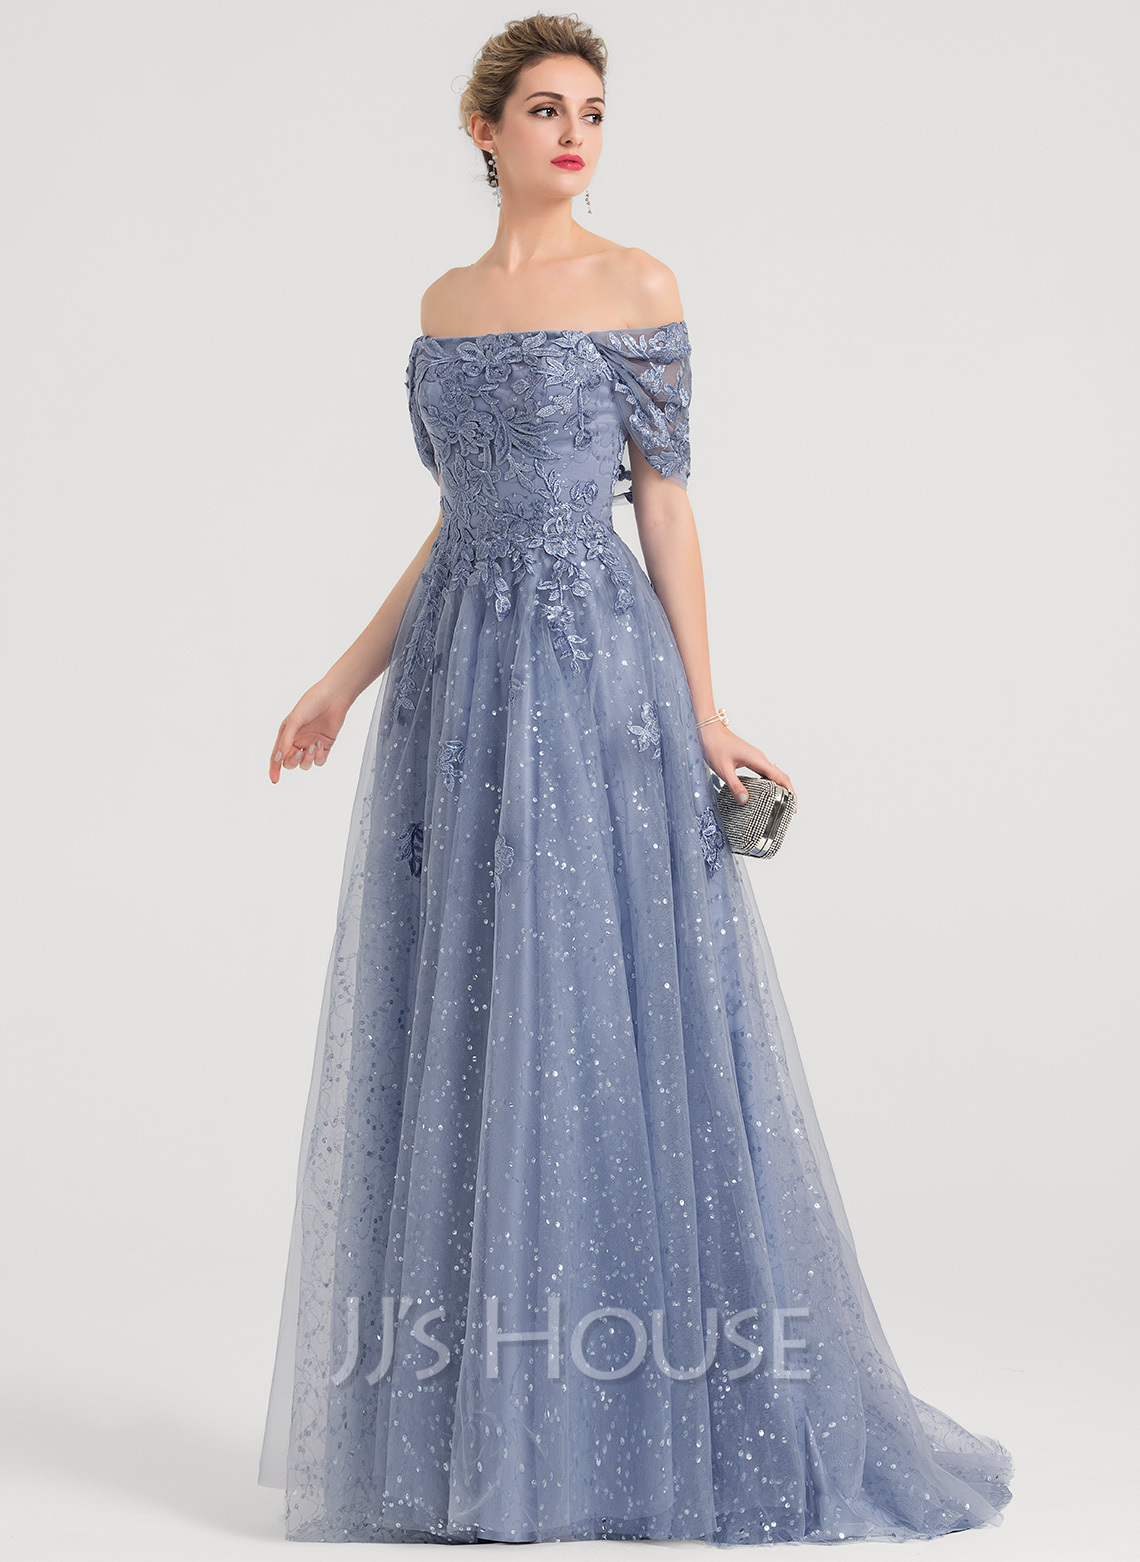 476b51cc985 A-Line Princess Off-the-Shoulder Sweep Train Tulle Prom Dresses With.  Loading zoom